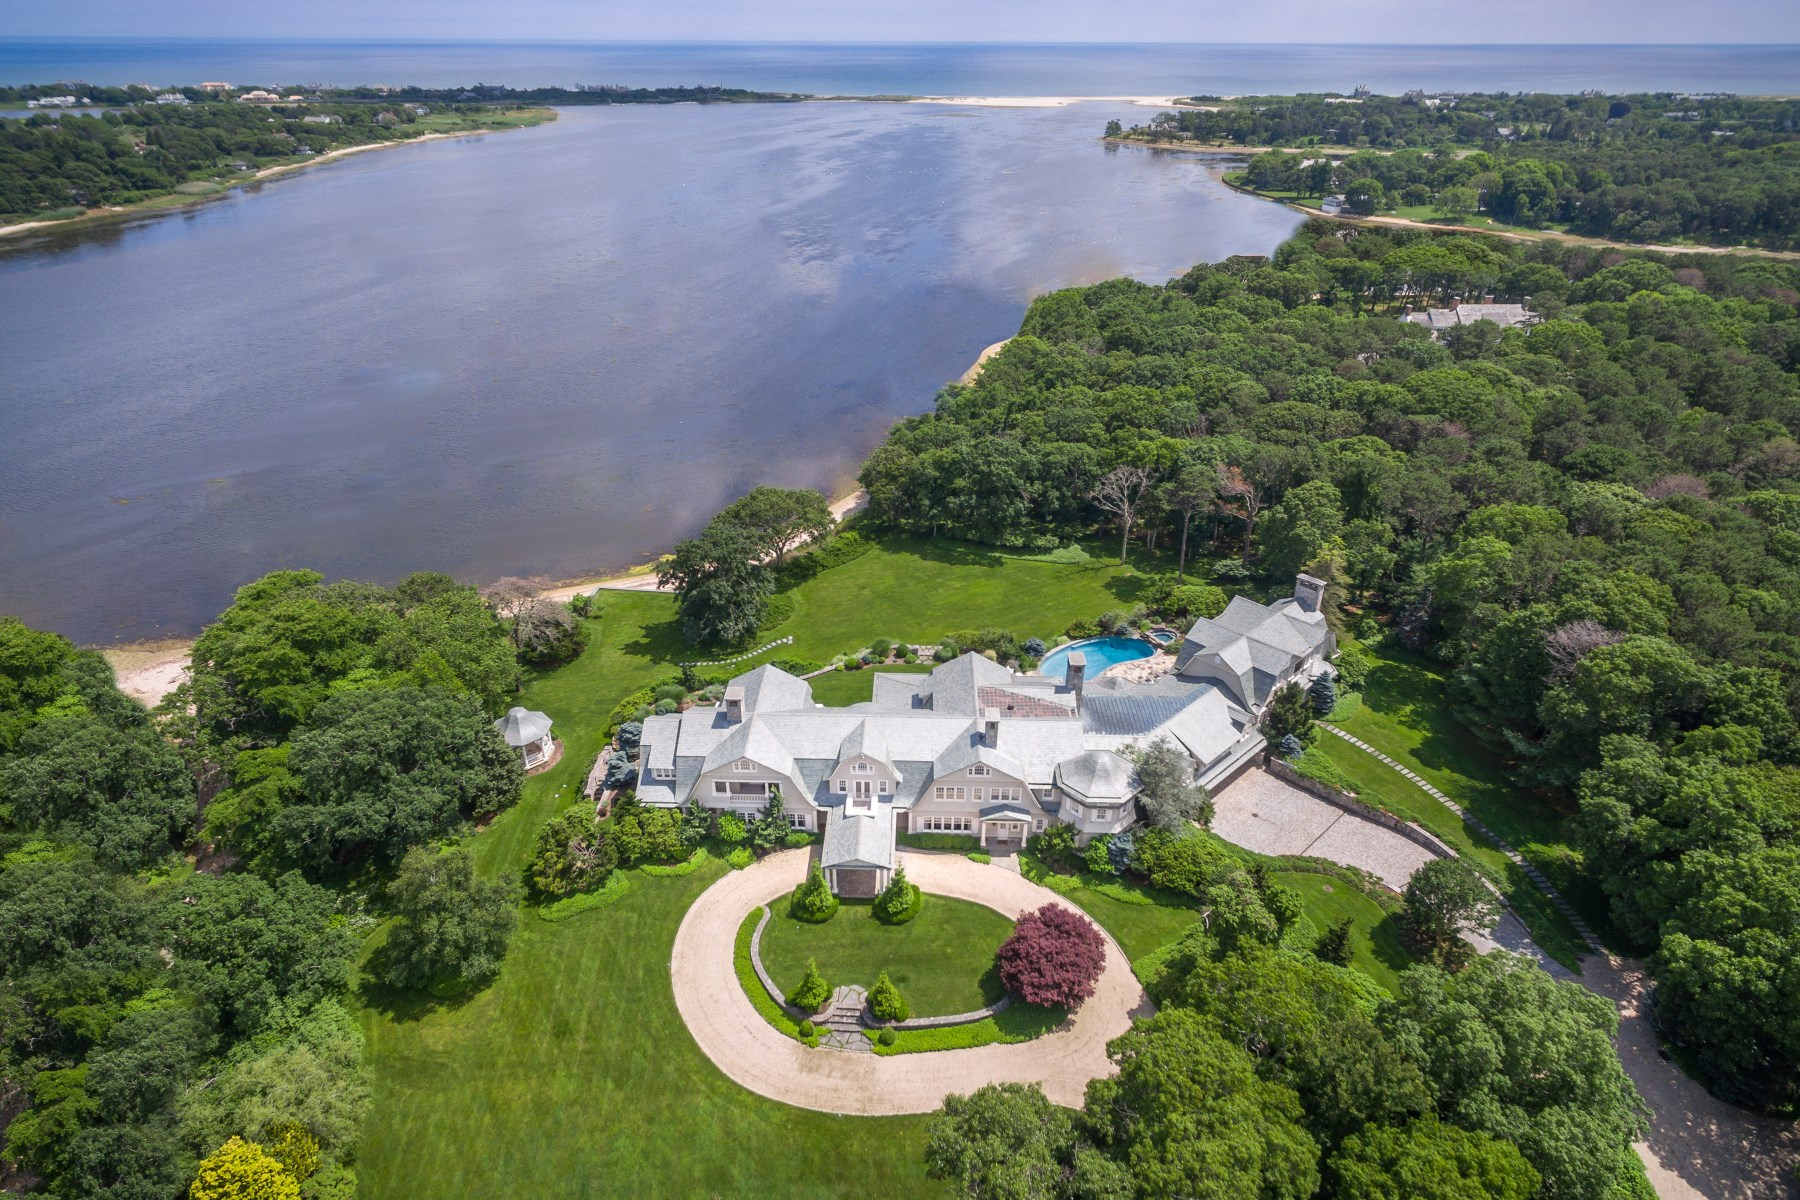 Single Family Home for Sale at Burnt Point 38 Mathews Road Wainscott, New York 11975 United States